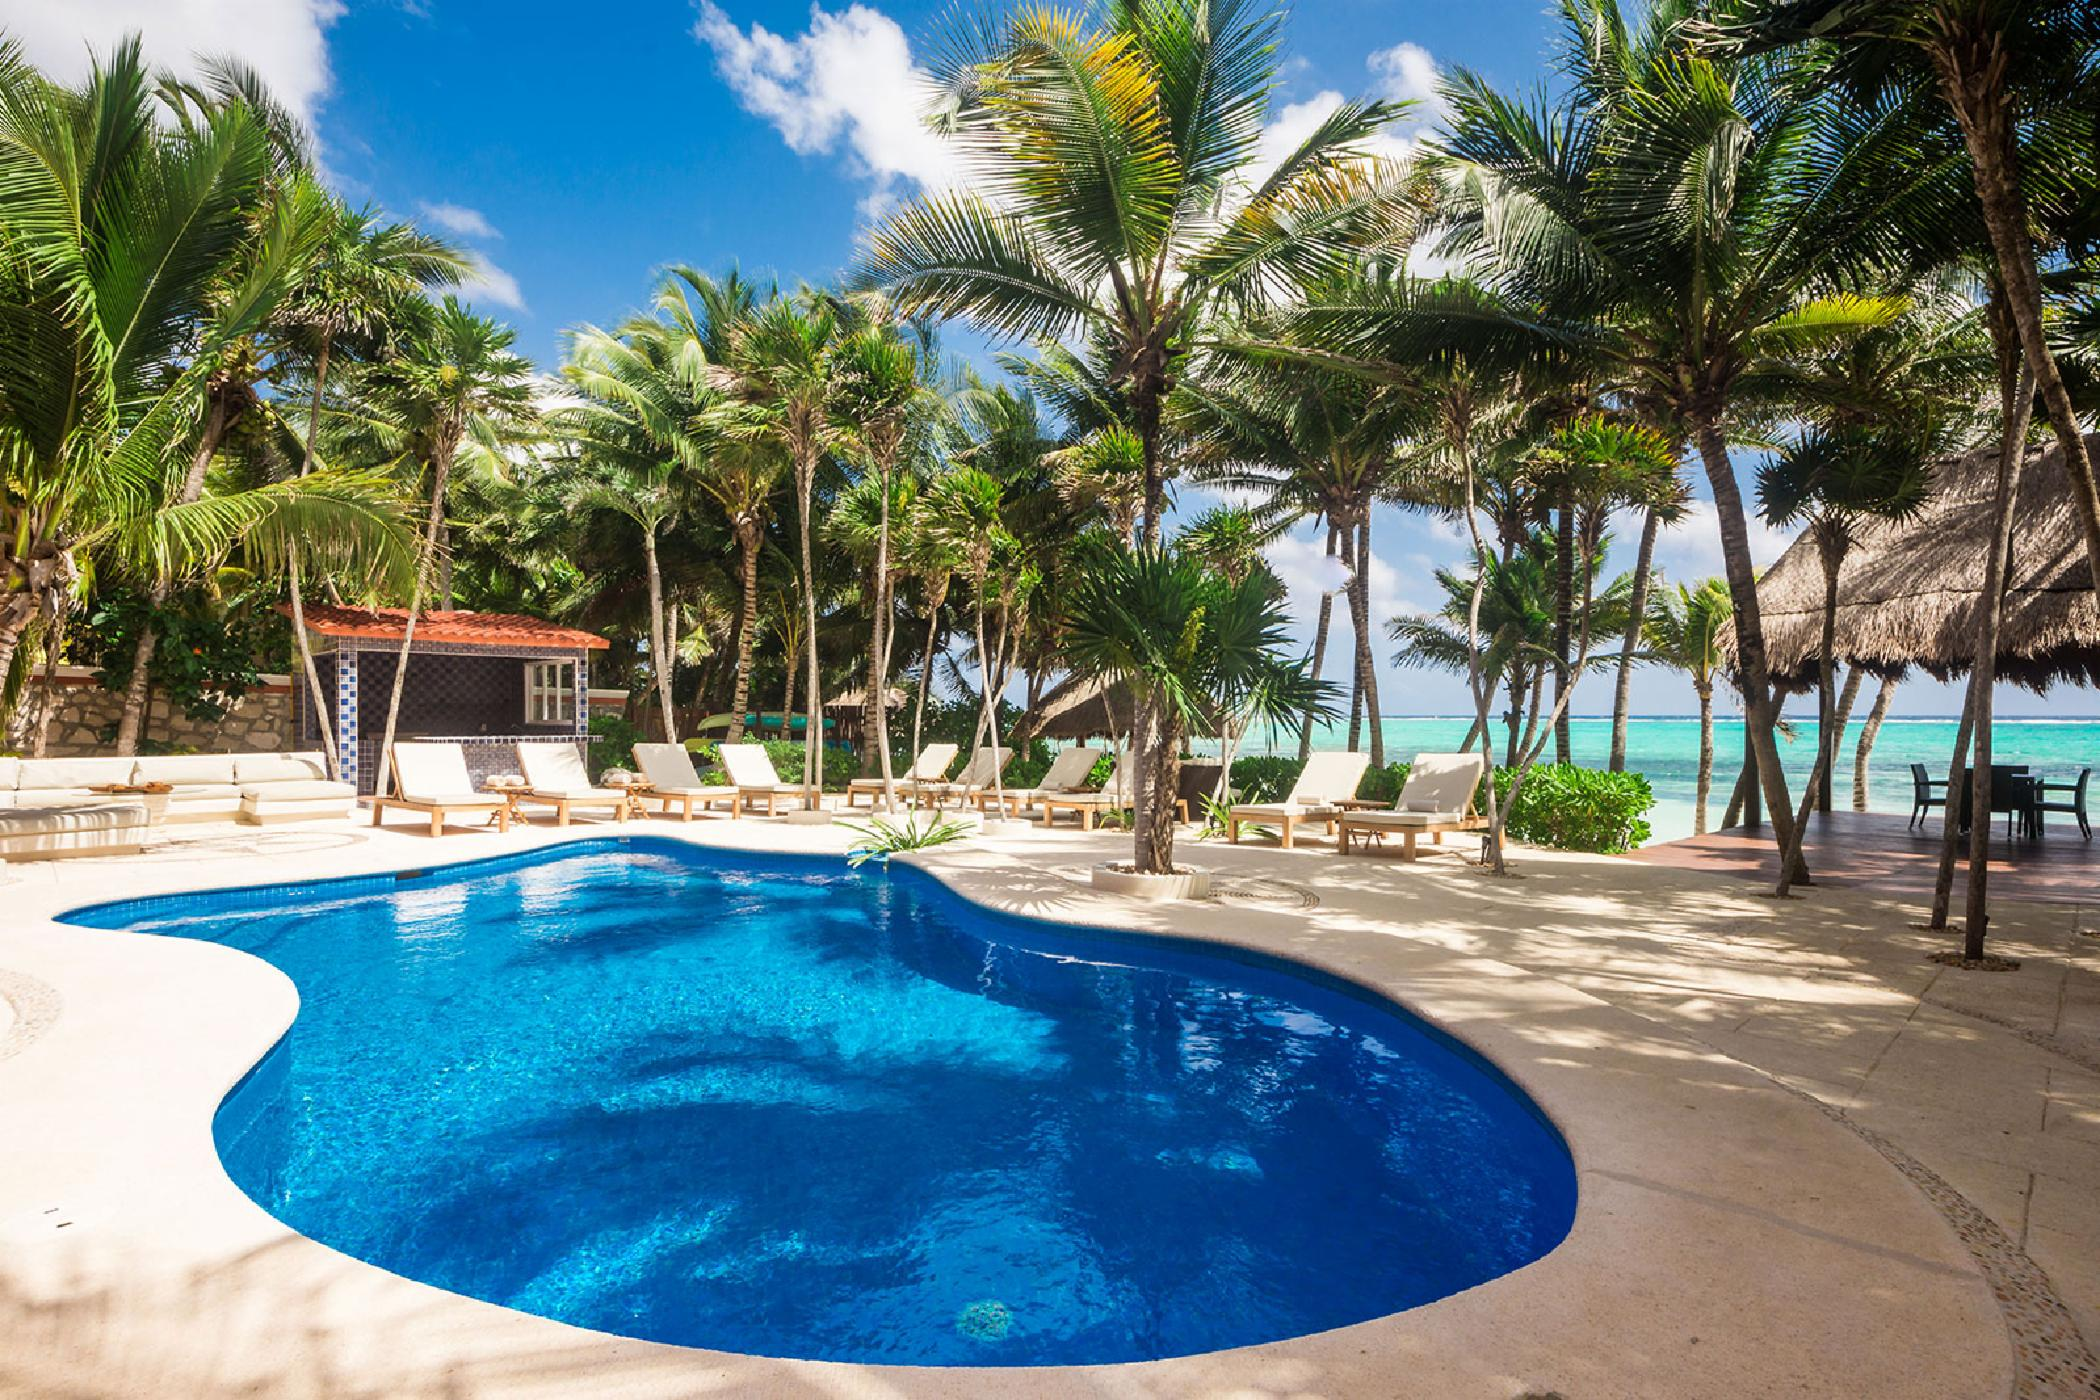 Soliman Bay 9 BDR estate; main home + 4 guesthouses, private beach, amazing pool area, rooftop observatory